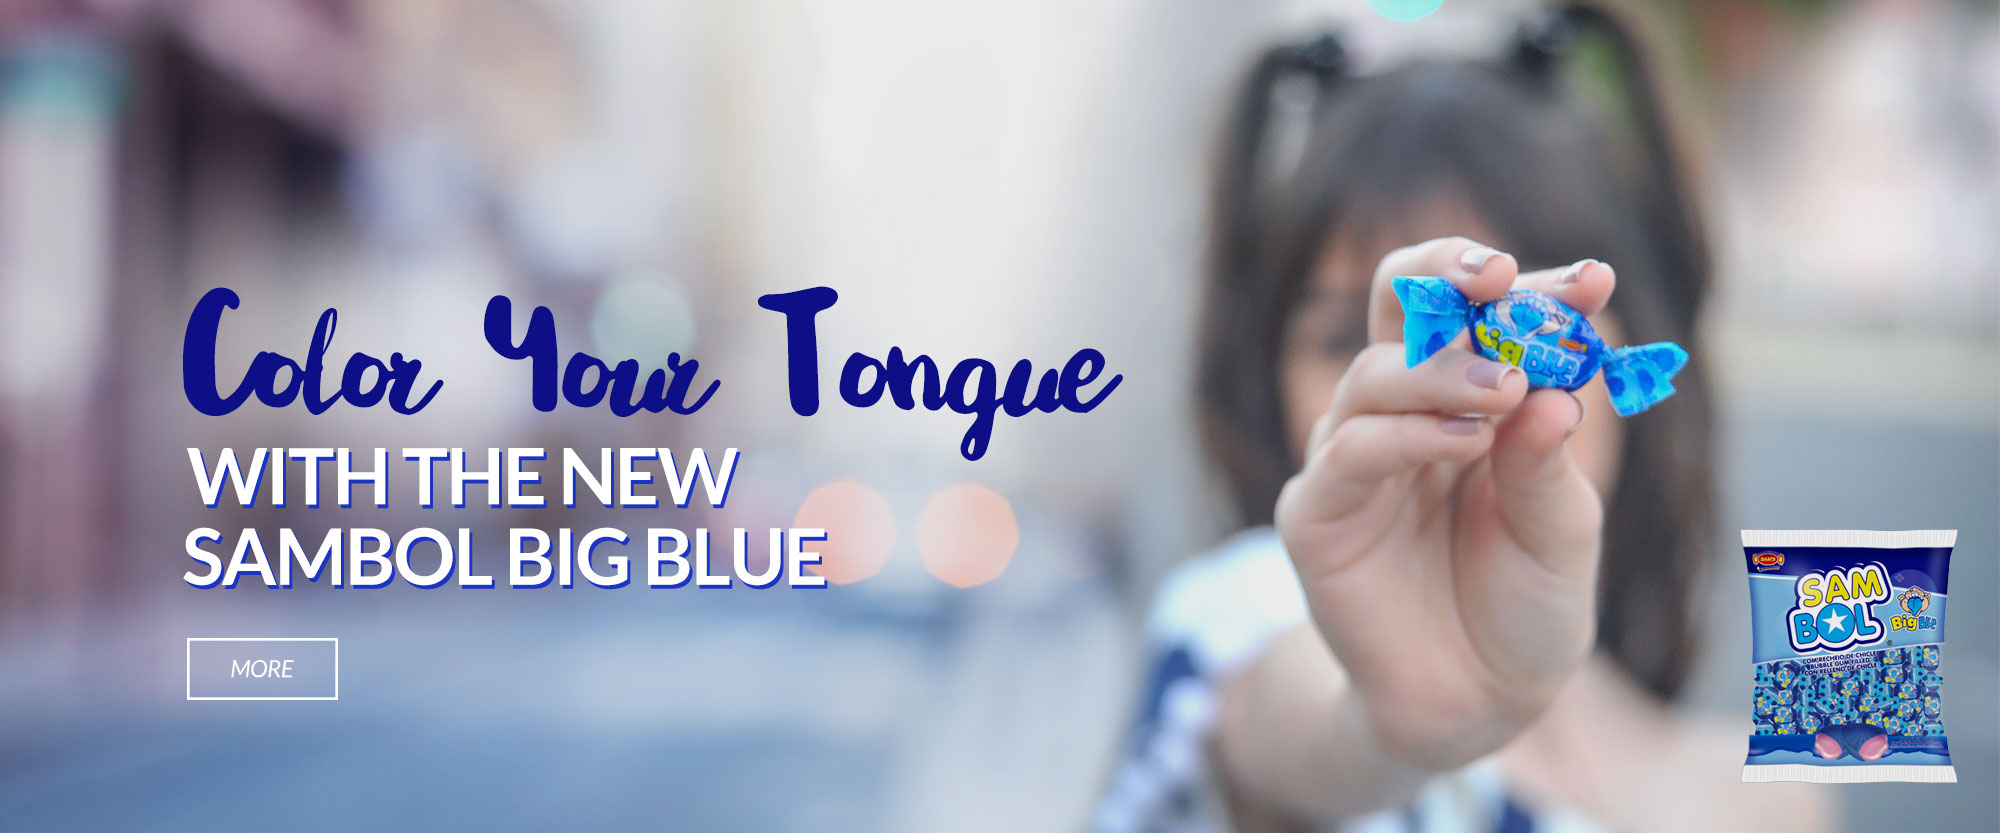 Sambol Big Blue - Ingles